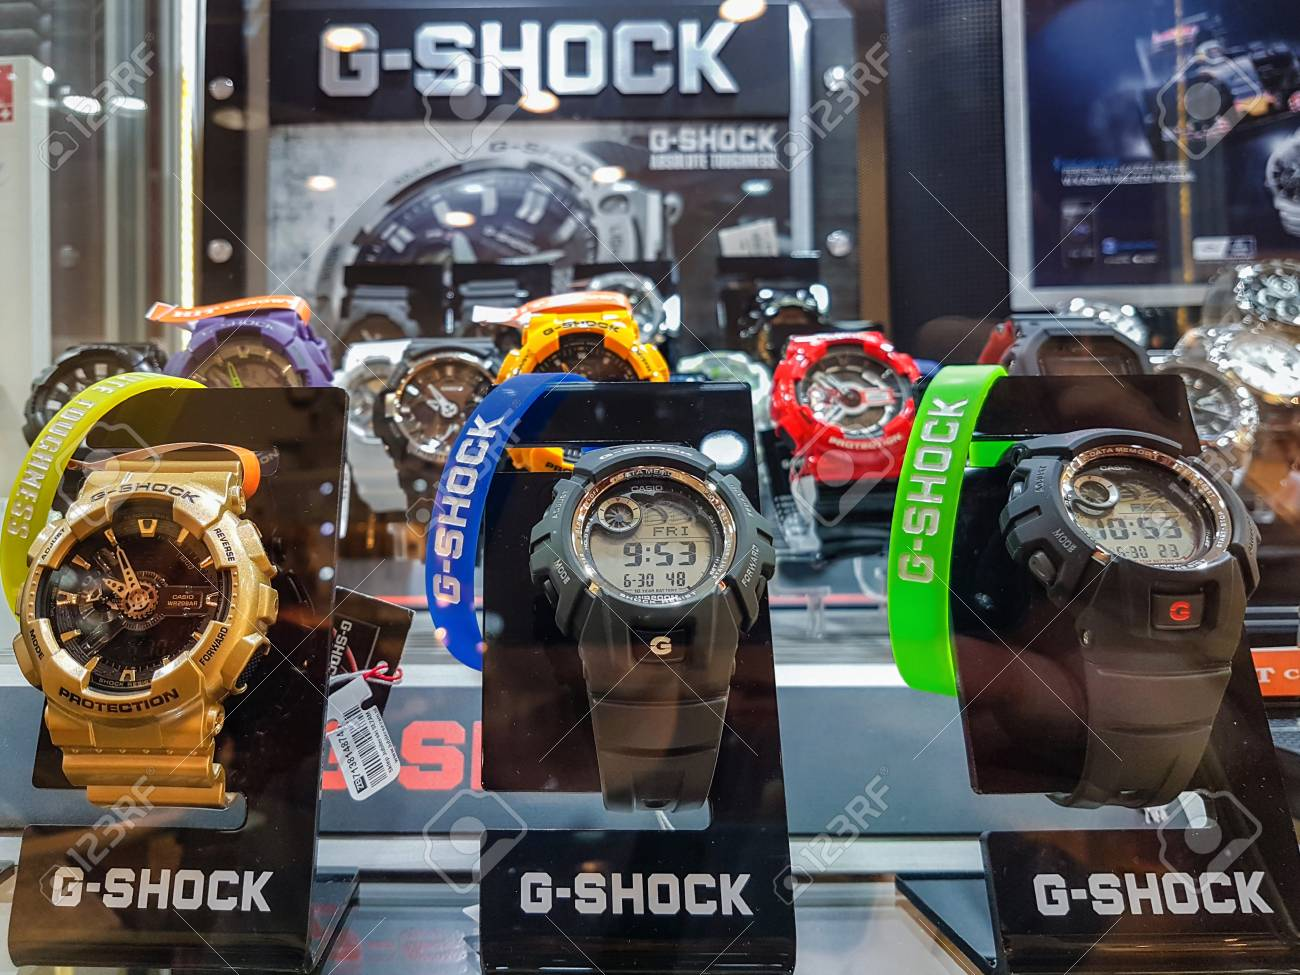 2358f1fcb66c Nowy Sacz, Poland - June 30, 2017: Casio G-Shock watches for sale in a shop  window. G-Shock is a line of watches manufactured by Casio, designed to  resist ...